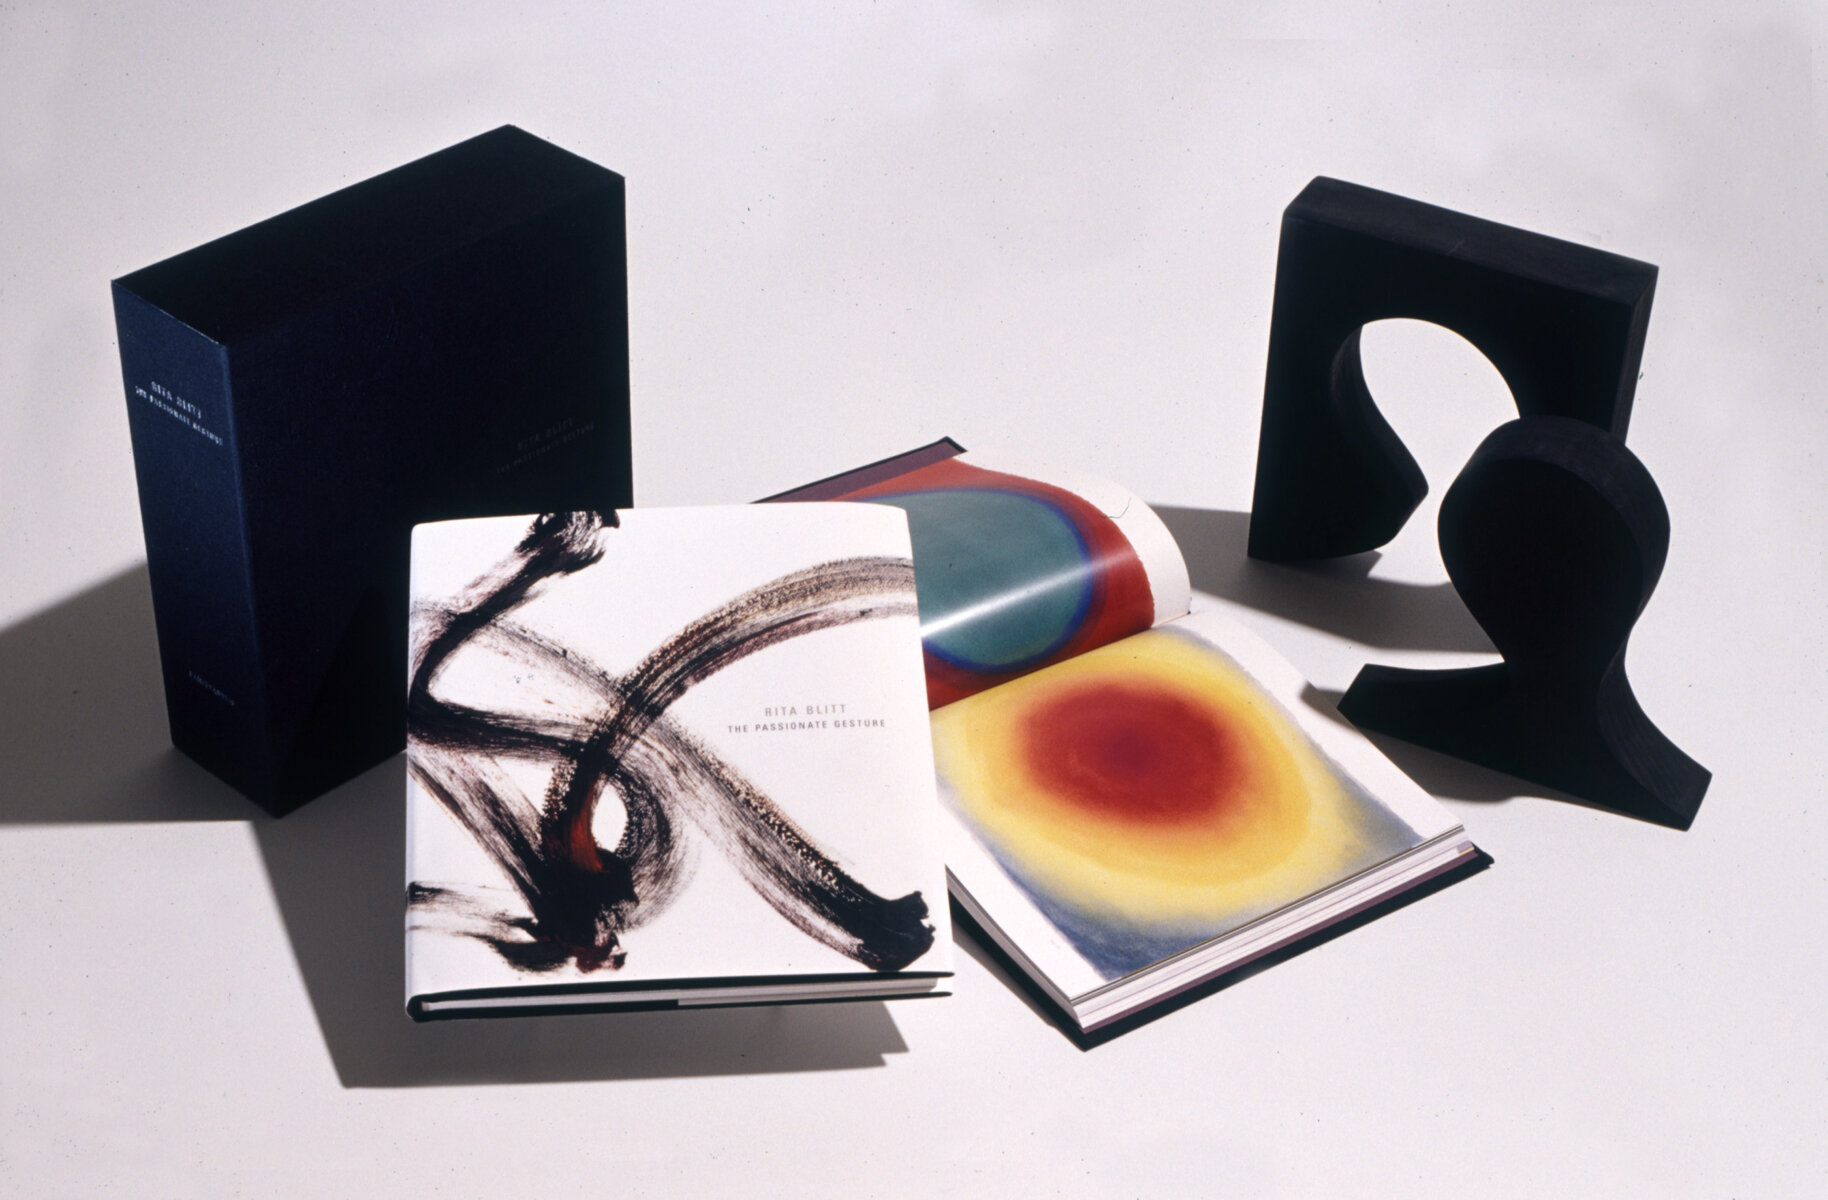 Passionate Gestrue, limited edition, 2001, book and sculpture.jpg